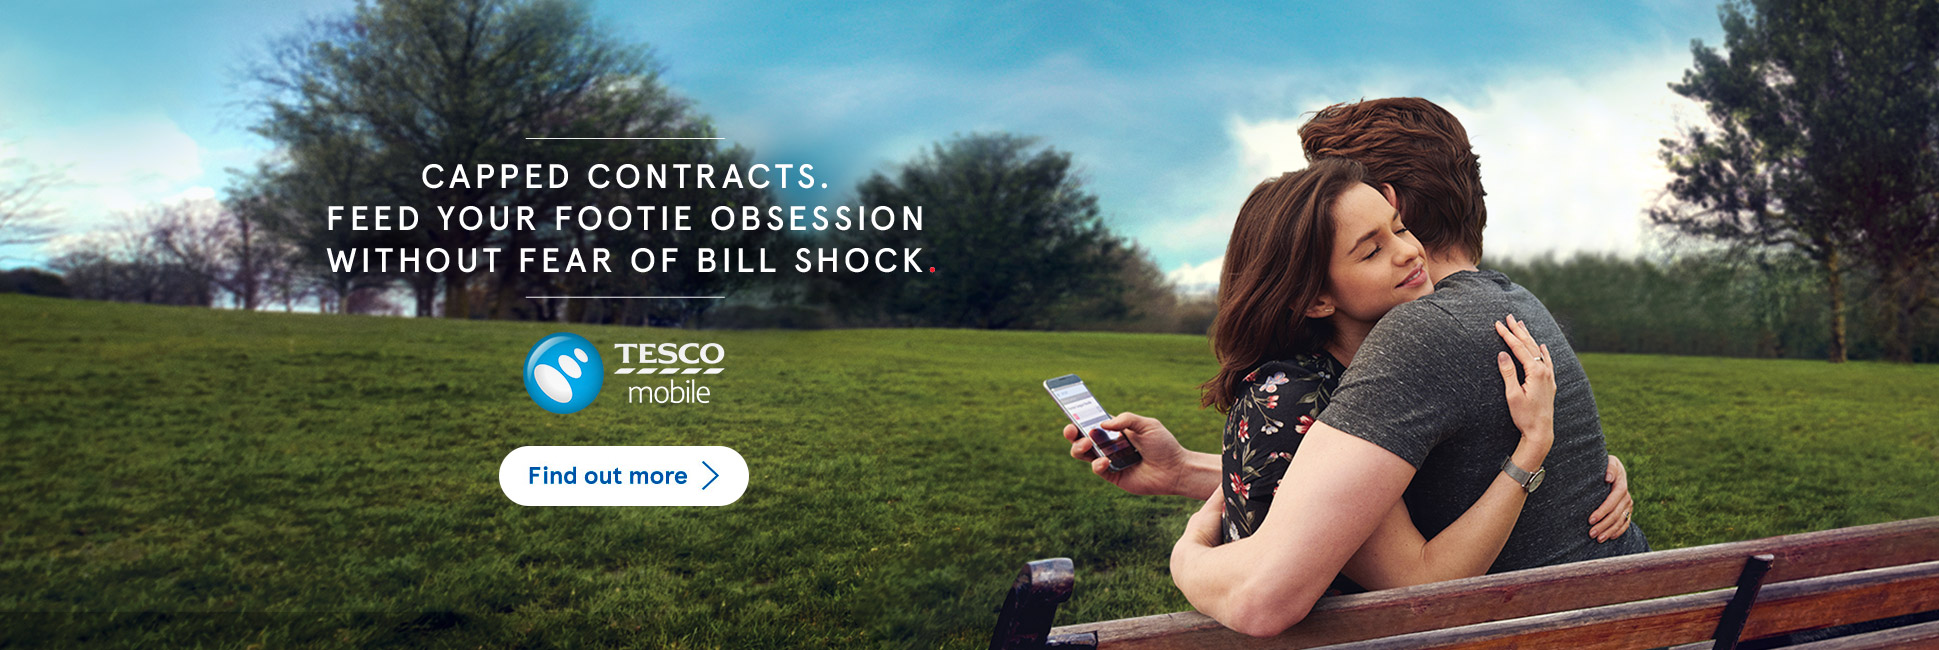 Tesco Mobile Capped Contracts